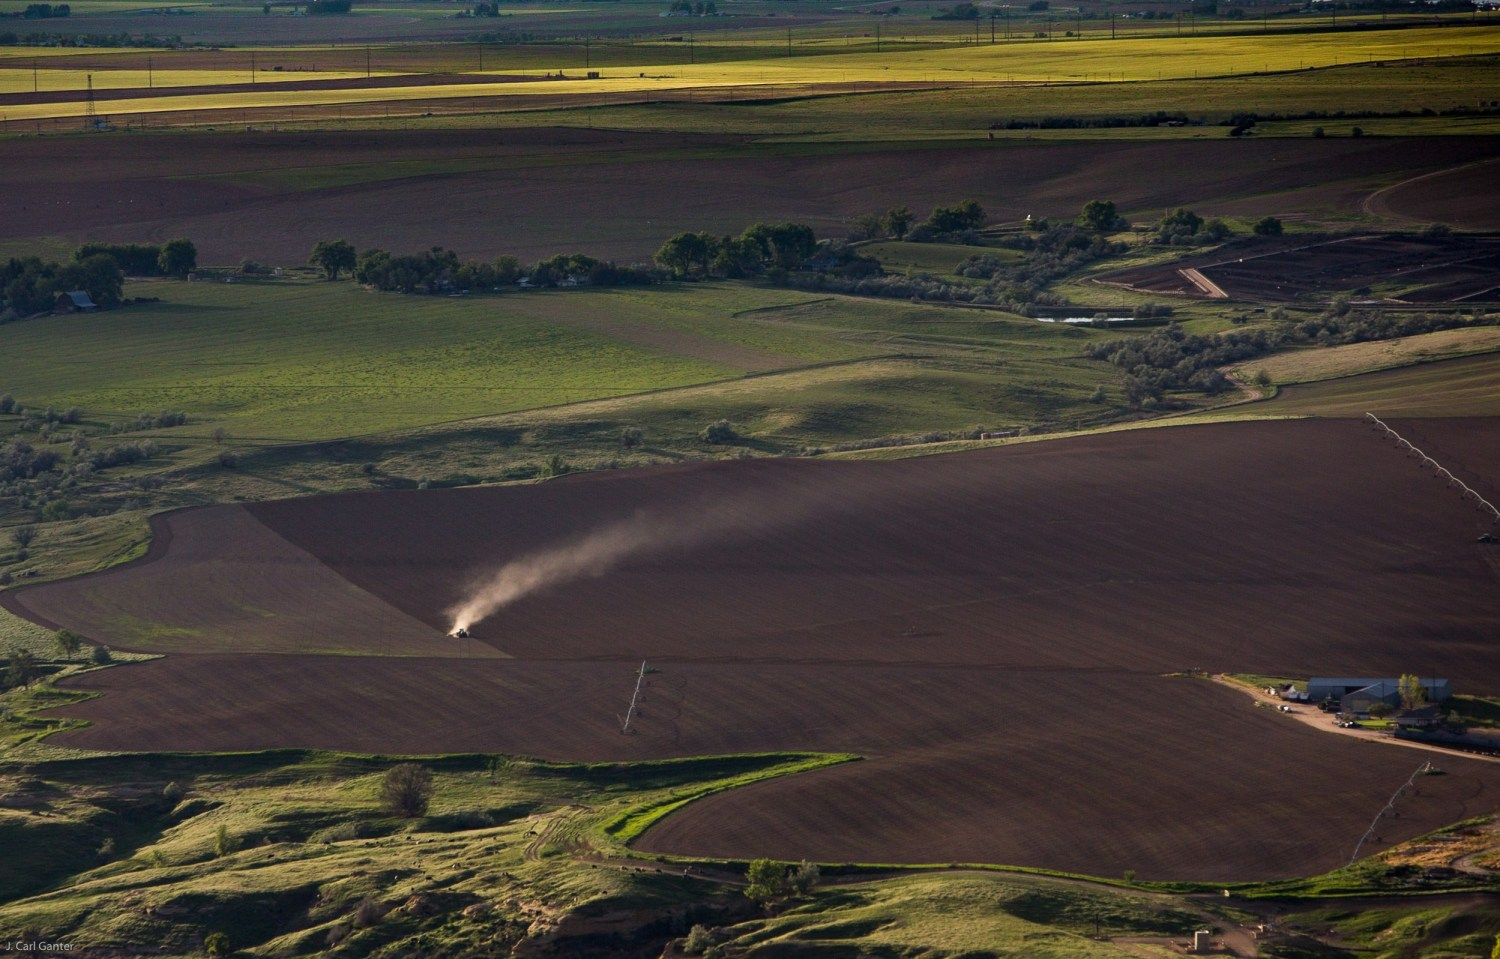 Evening settles over farmland in Weld County, Colorado. Photo © J. Carl Ganter / Circle of Blue